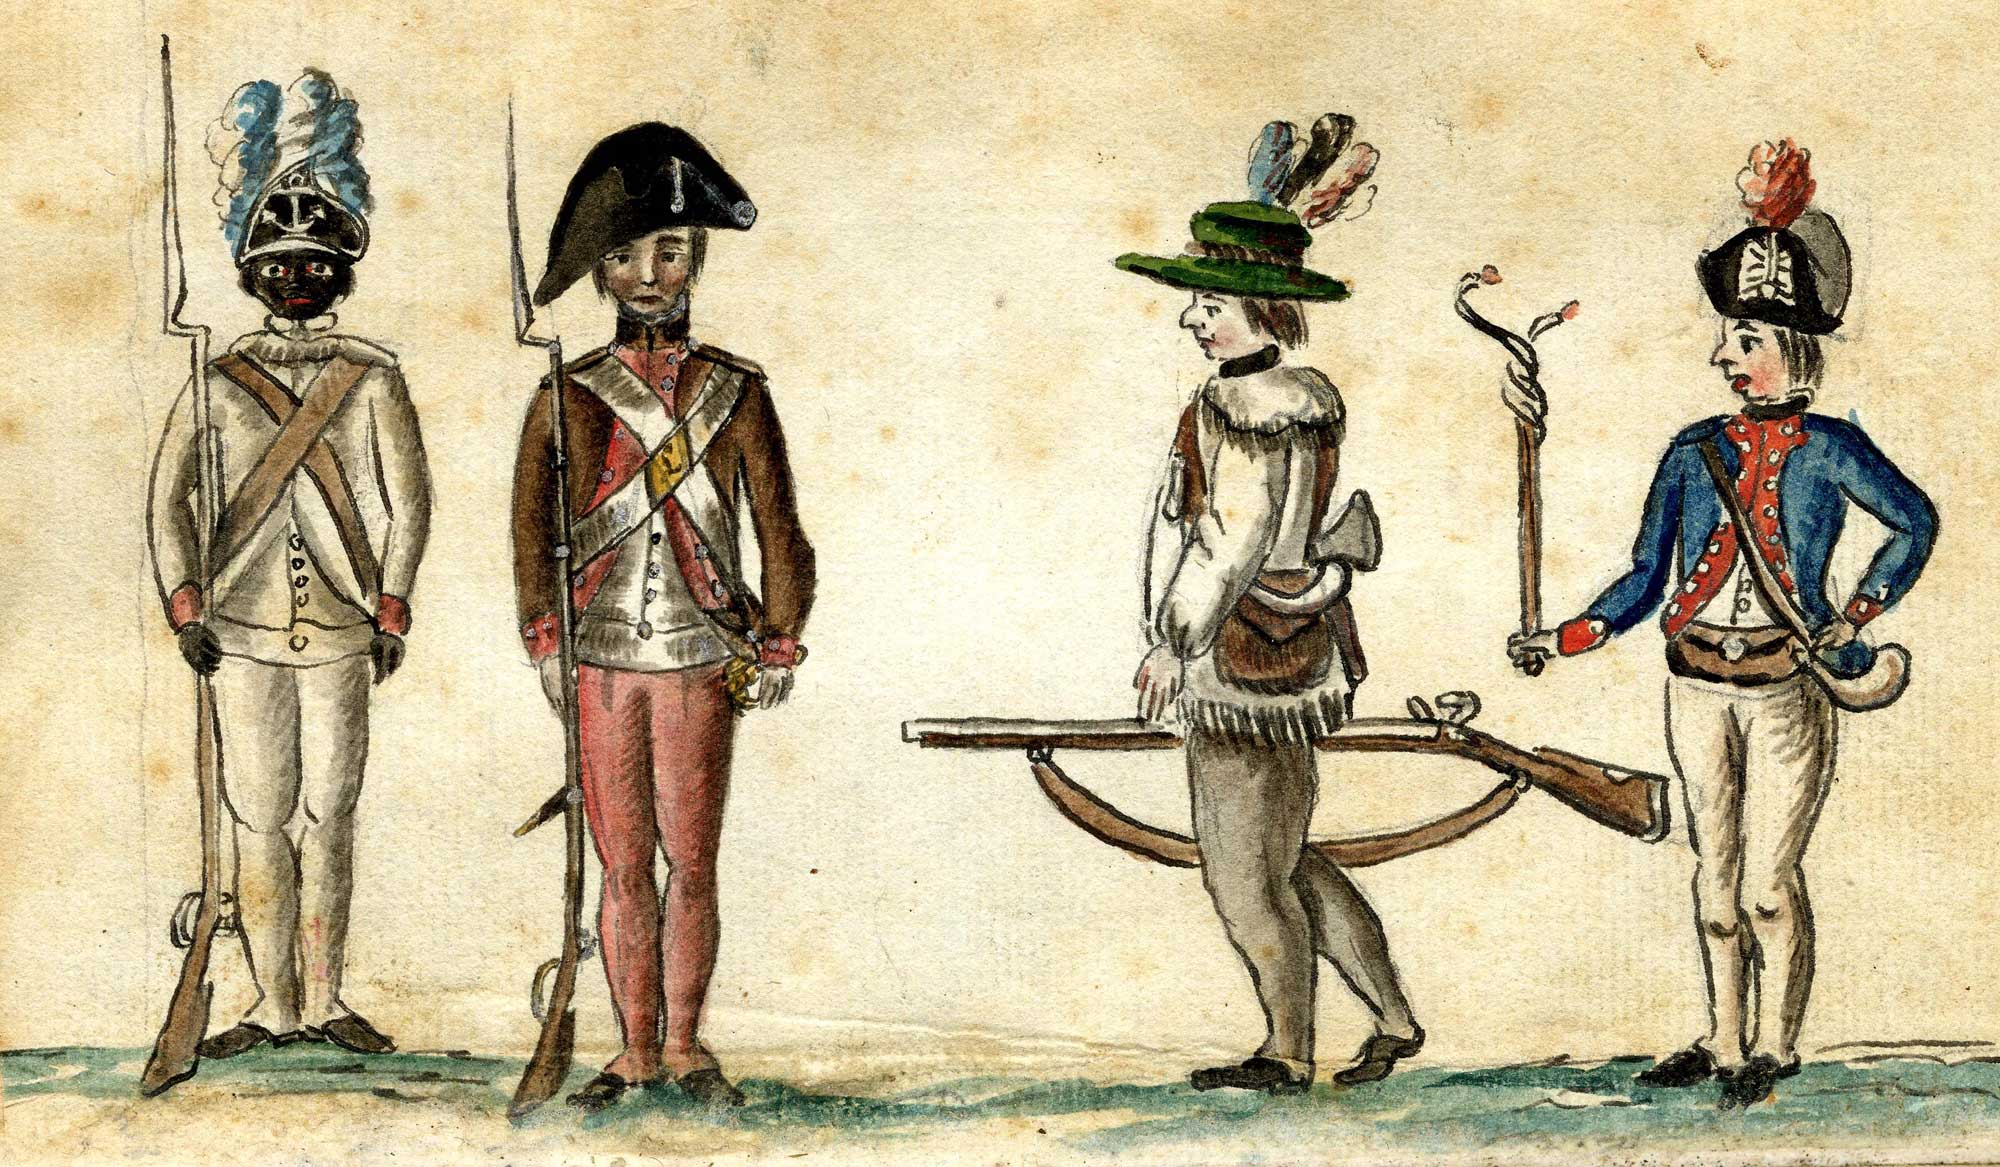 Awesome Facts About African-Americans in the American Revolution